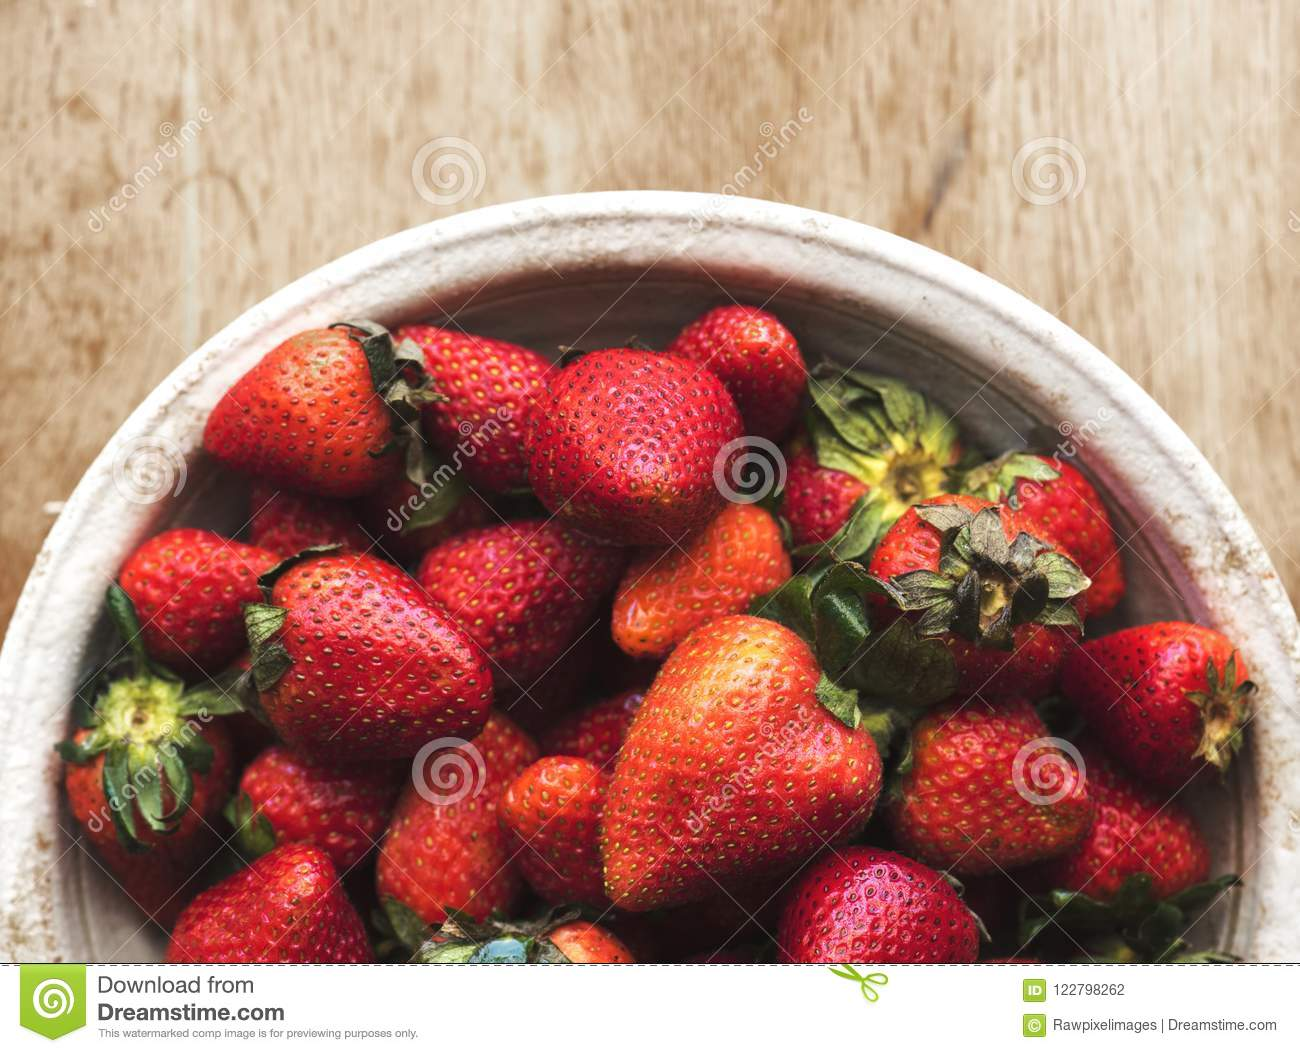 Fresh strawberries in a bowl on wooden table